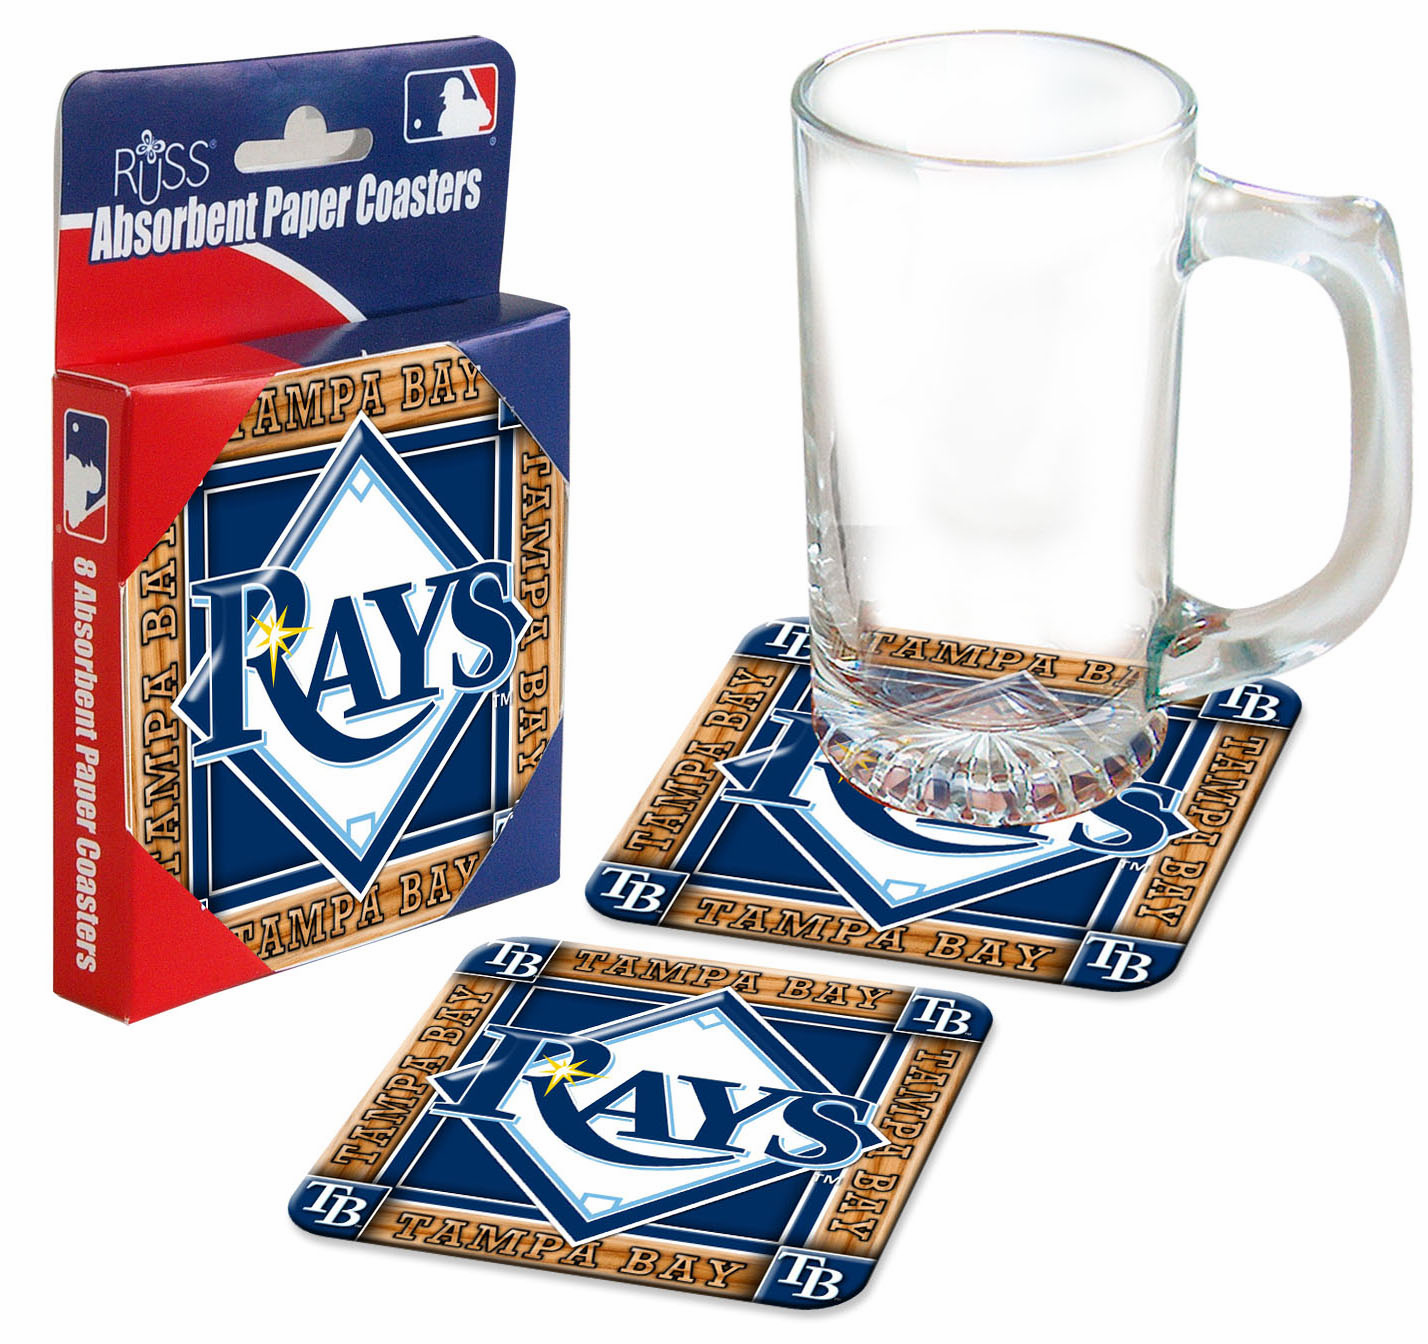 Tampa Bay Rays Absorbent Paper Coaster Set